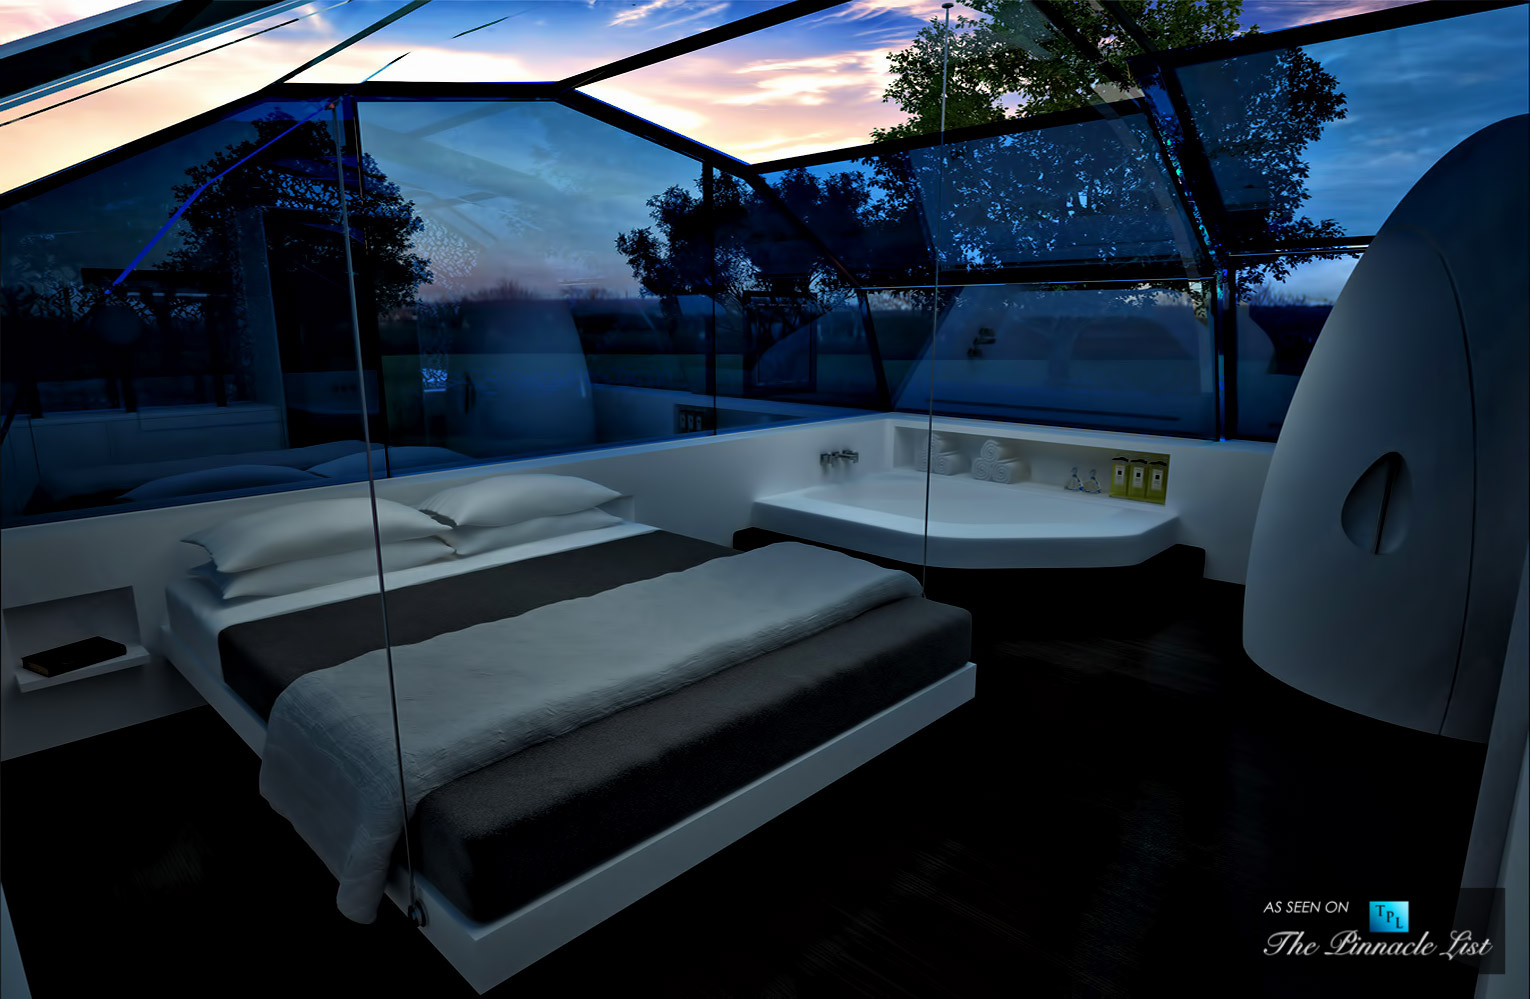 The Photon Space – Imagining an All-Glass Modular Home, Controllable with an iPhone